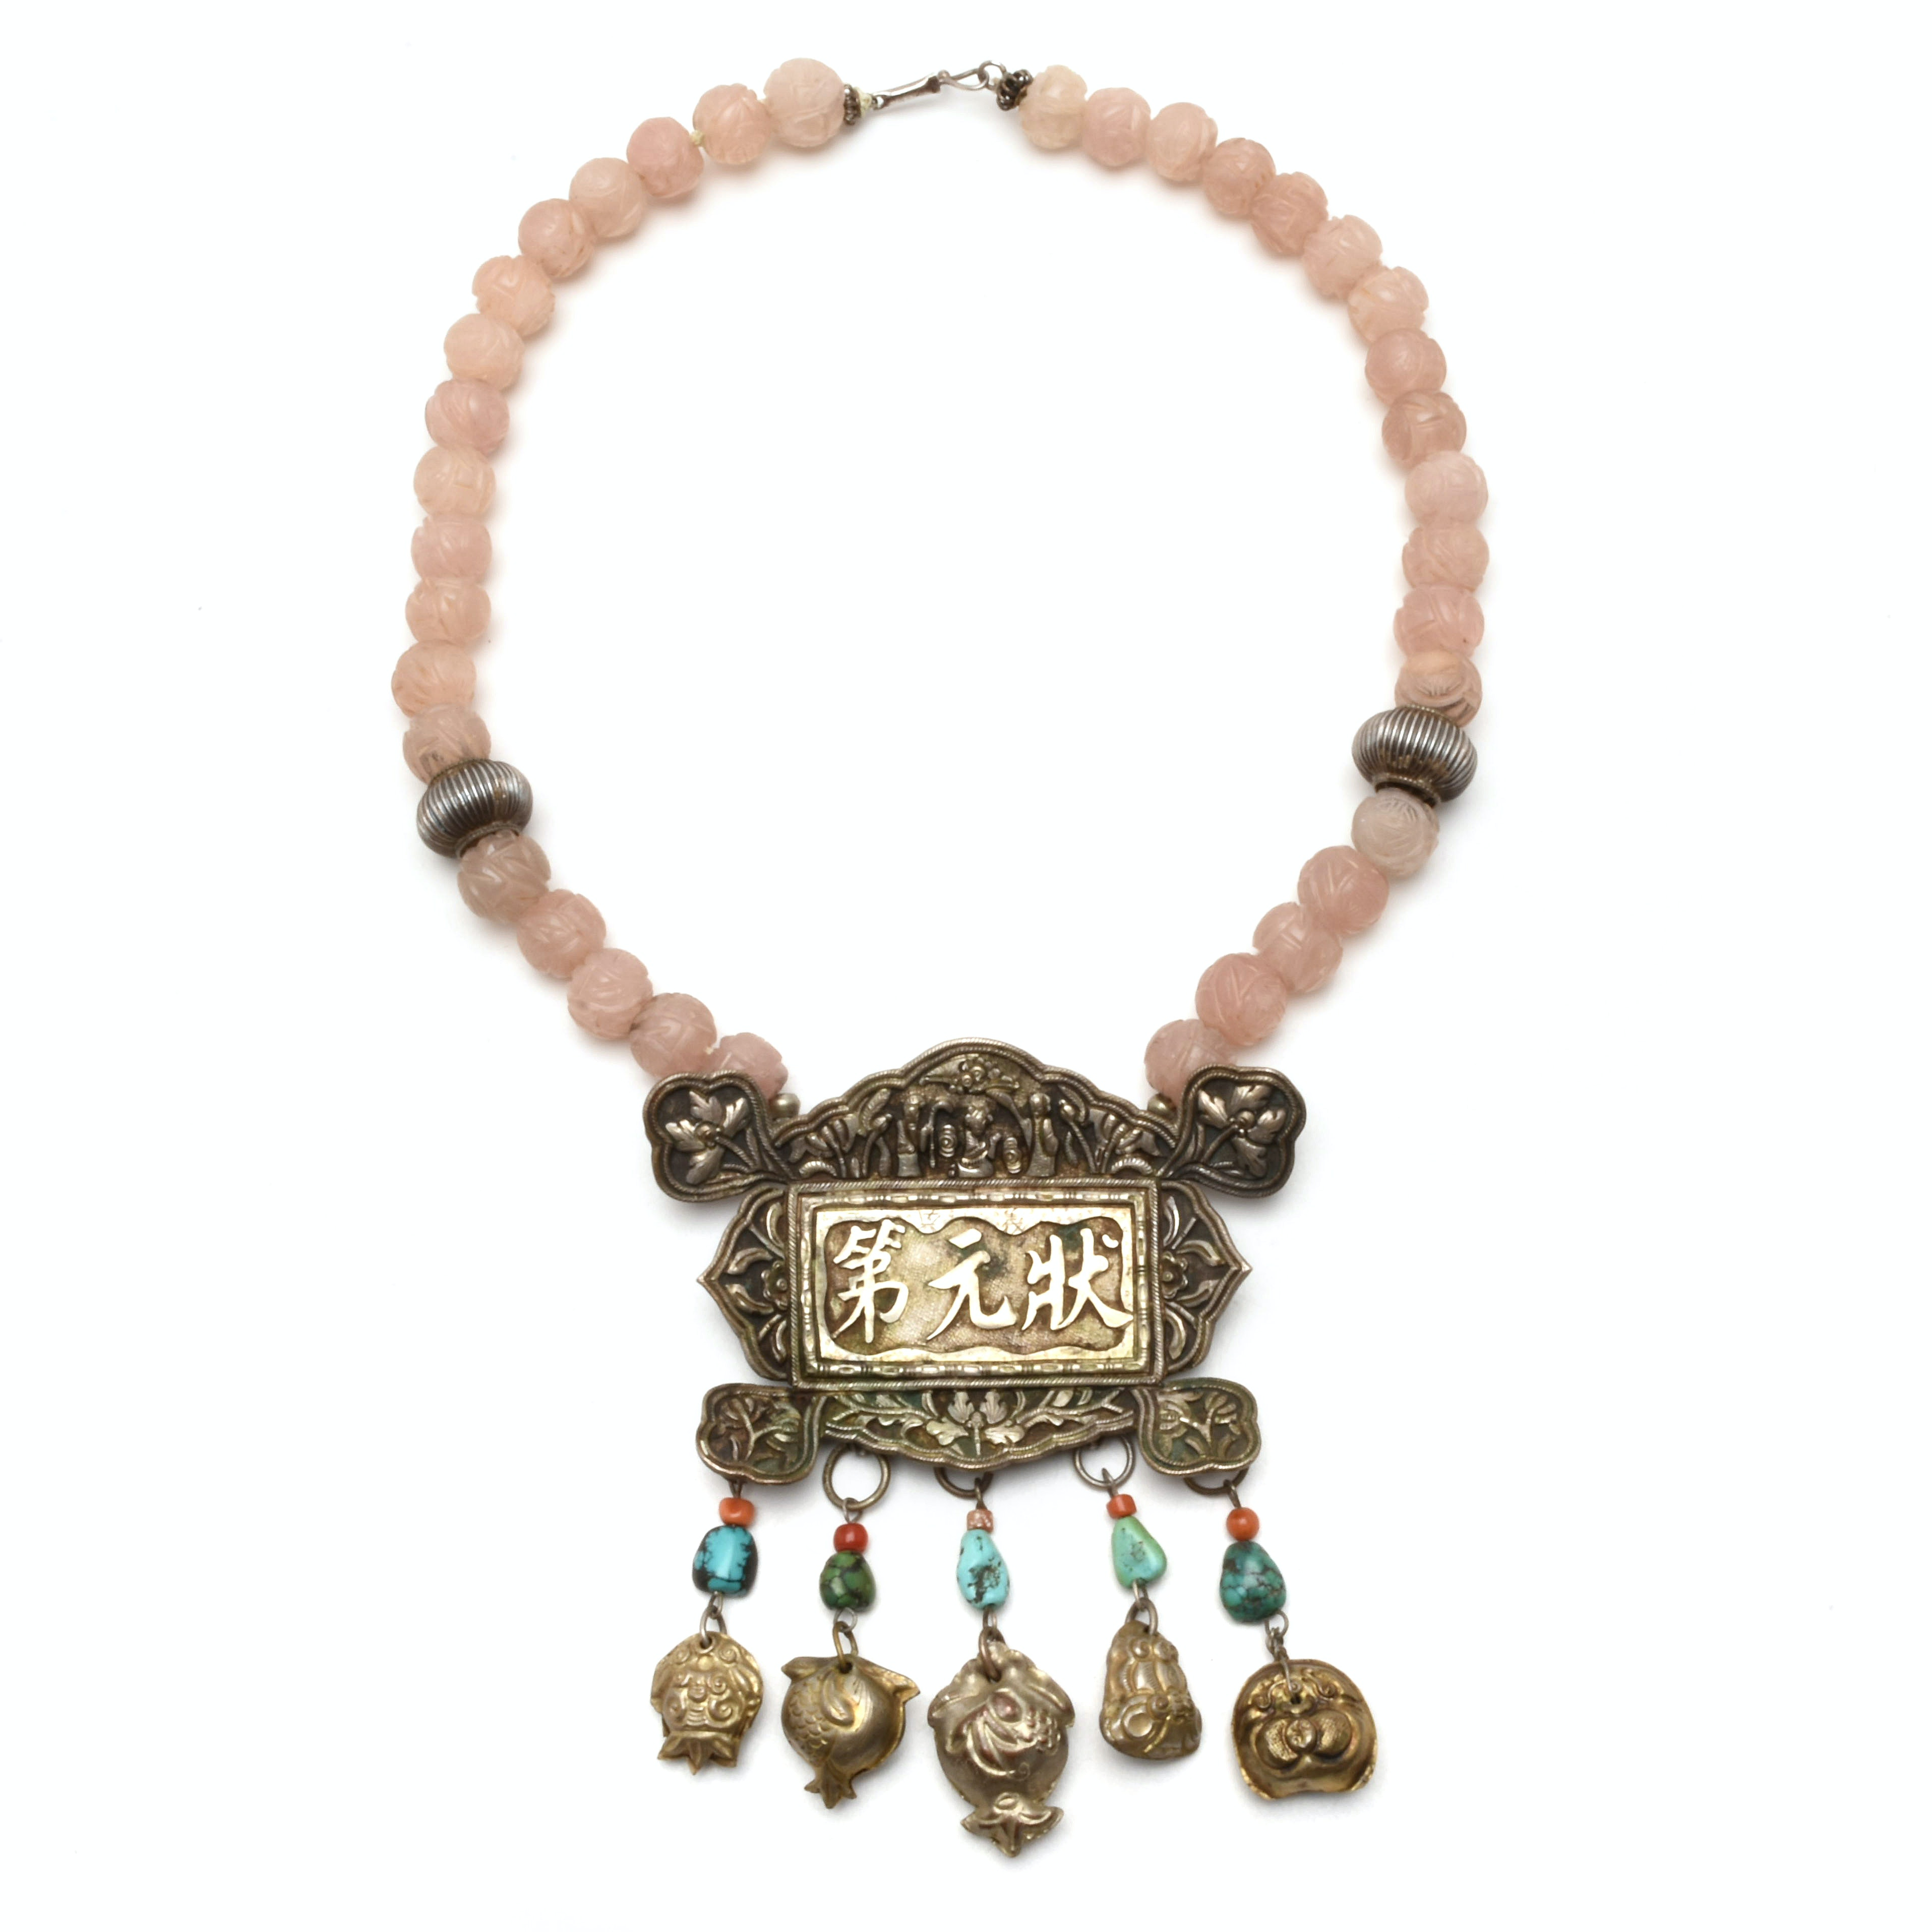 Antique Chinese Silver-Tone Rose Quartz, Coral, Howlite Court Style Necklace